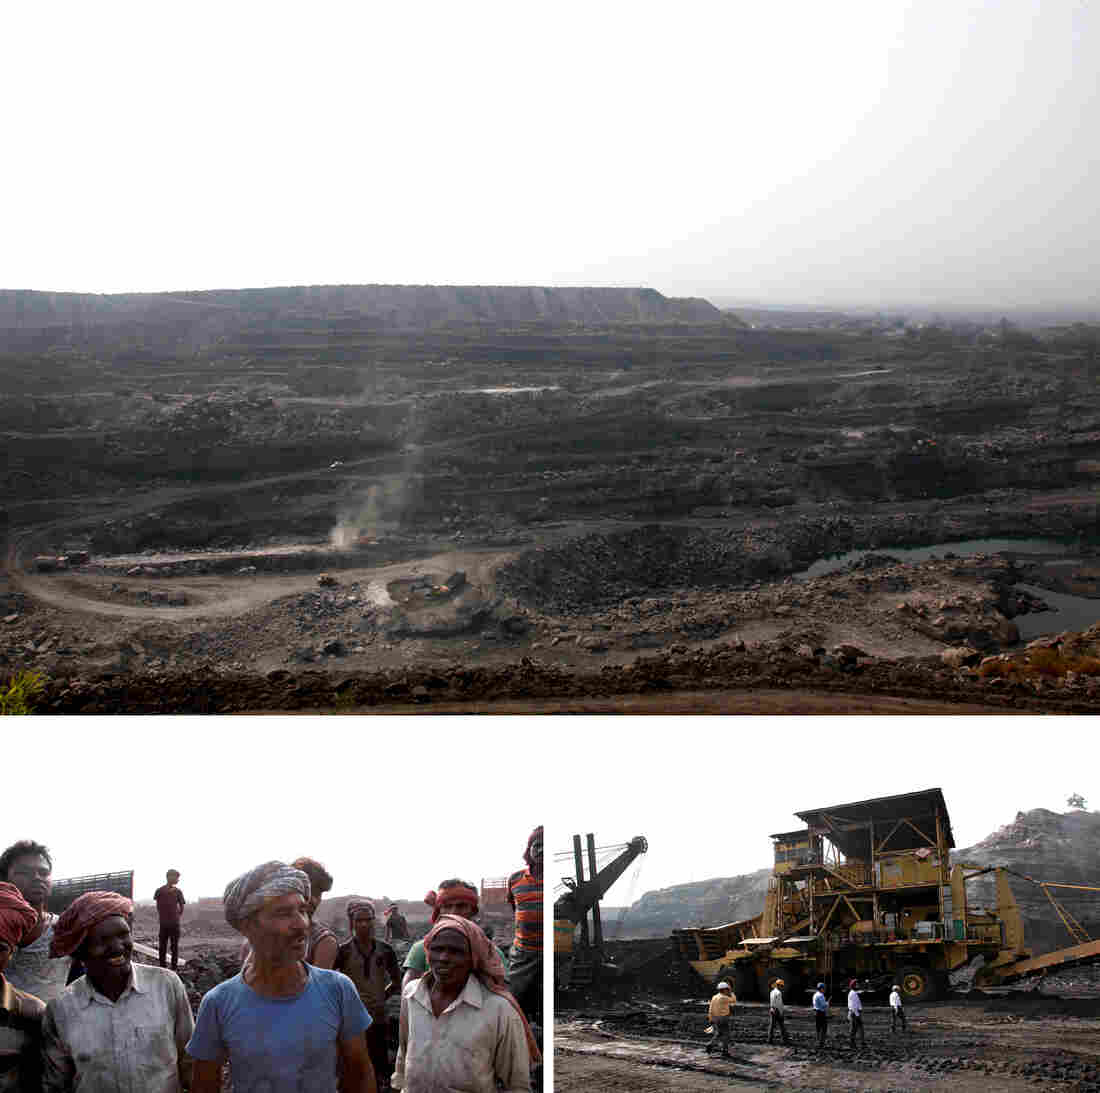 Indian law requires mines to reforest twice the land denuded by surface mining, top. Loaders, bottom left, are employed to lift heavy chunks of coal onto trucks, dangerous work that exposes many to toxins. At right, employees of Central Coalfields, Ltd., stand near an in-pit crusher used in open cast mining. Open pits cost a third of underground mining, but cause more damage to the environment.